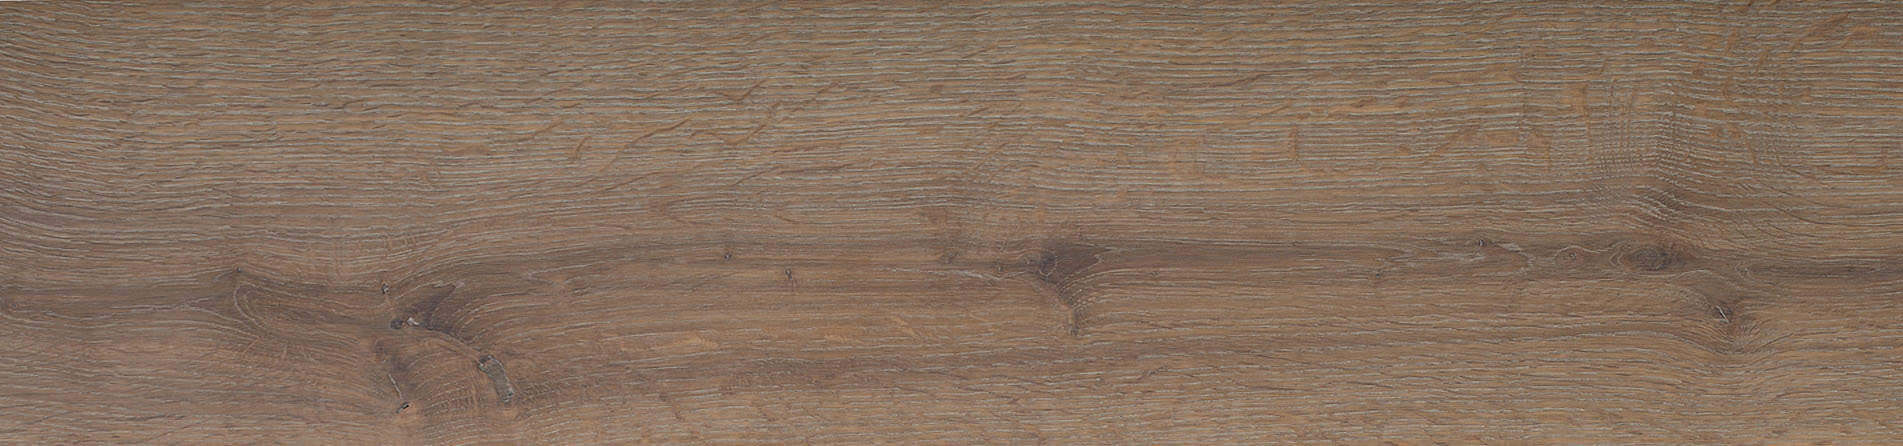 Brushed Fumed Oak